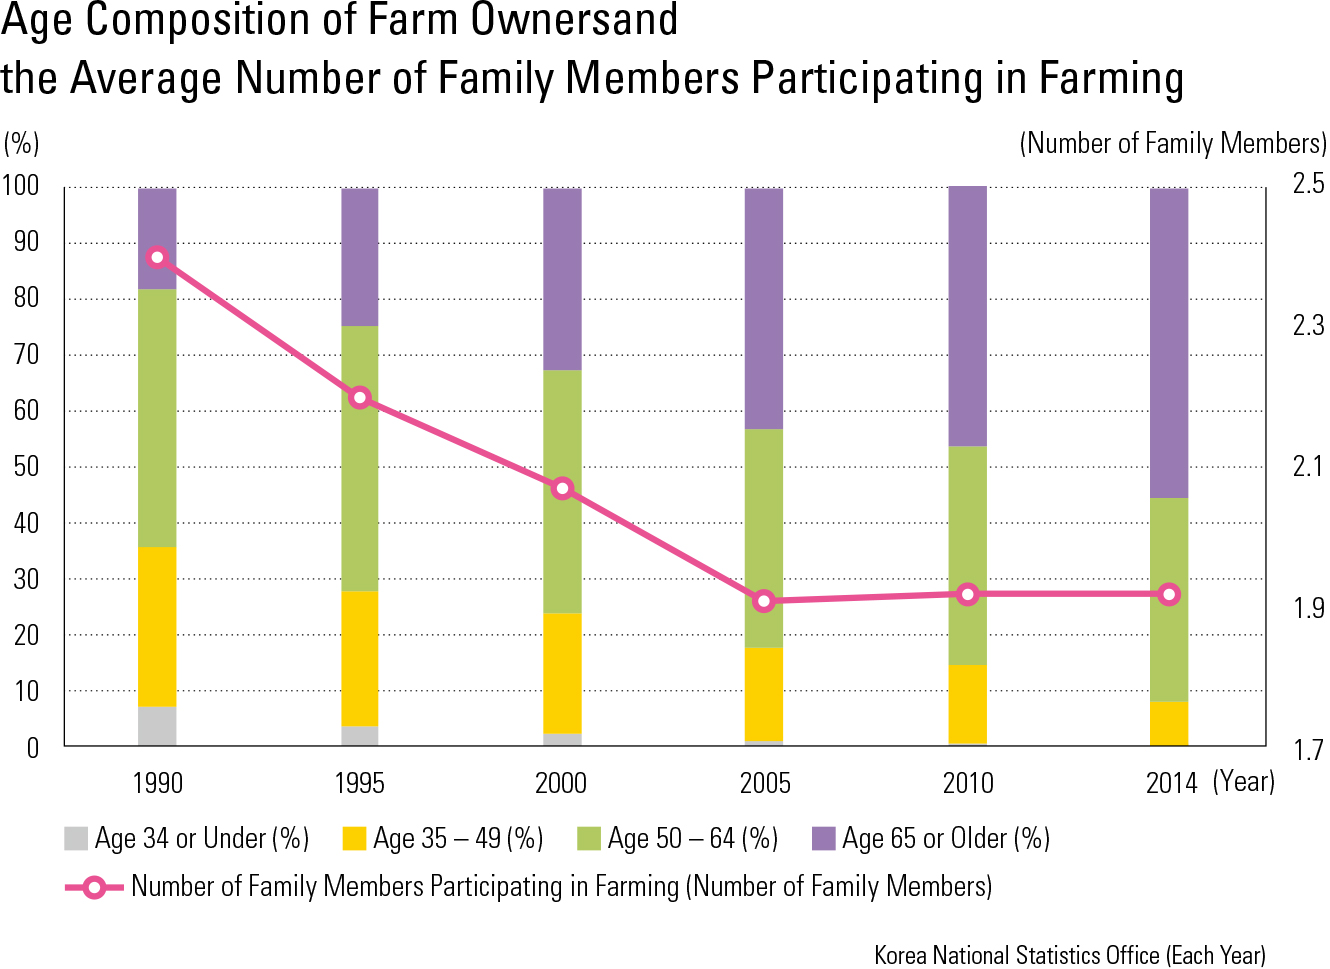 Age Composition of Farm Ownersand the Average Number of Family Members Participating in Farming